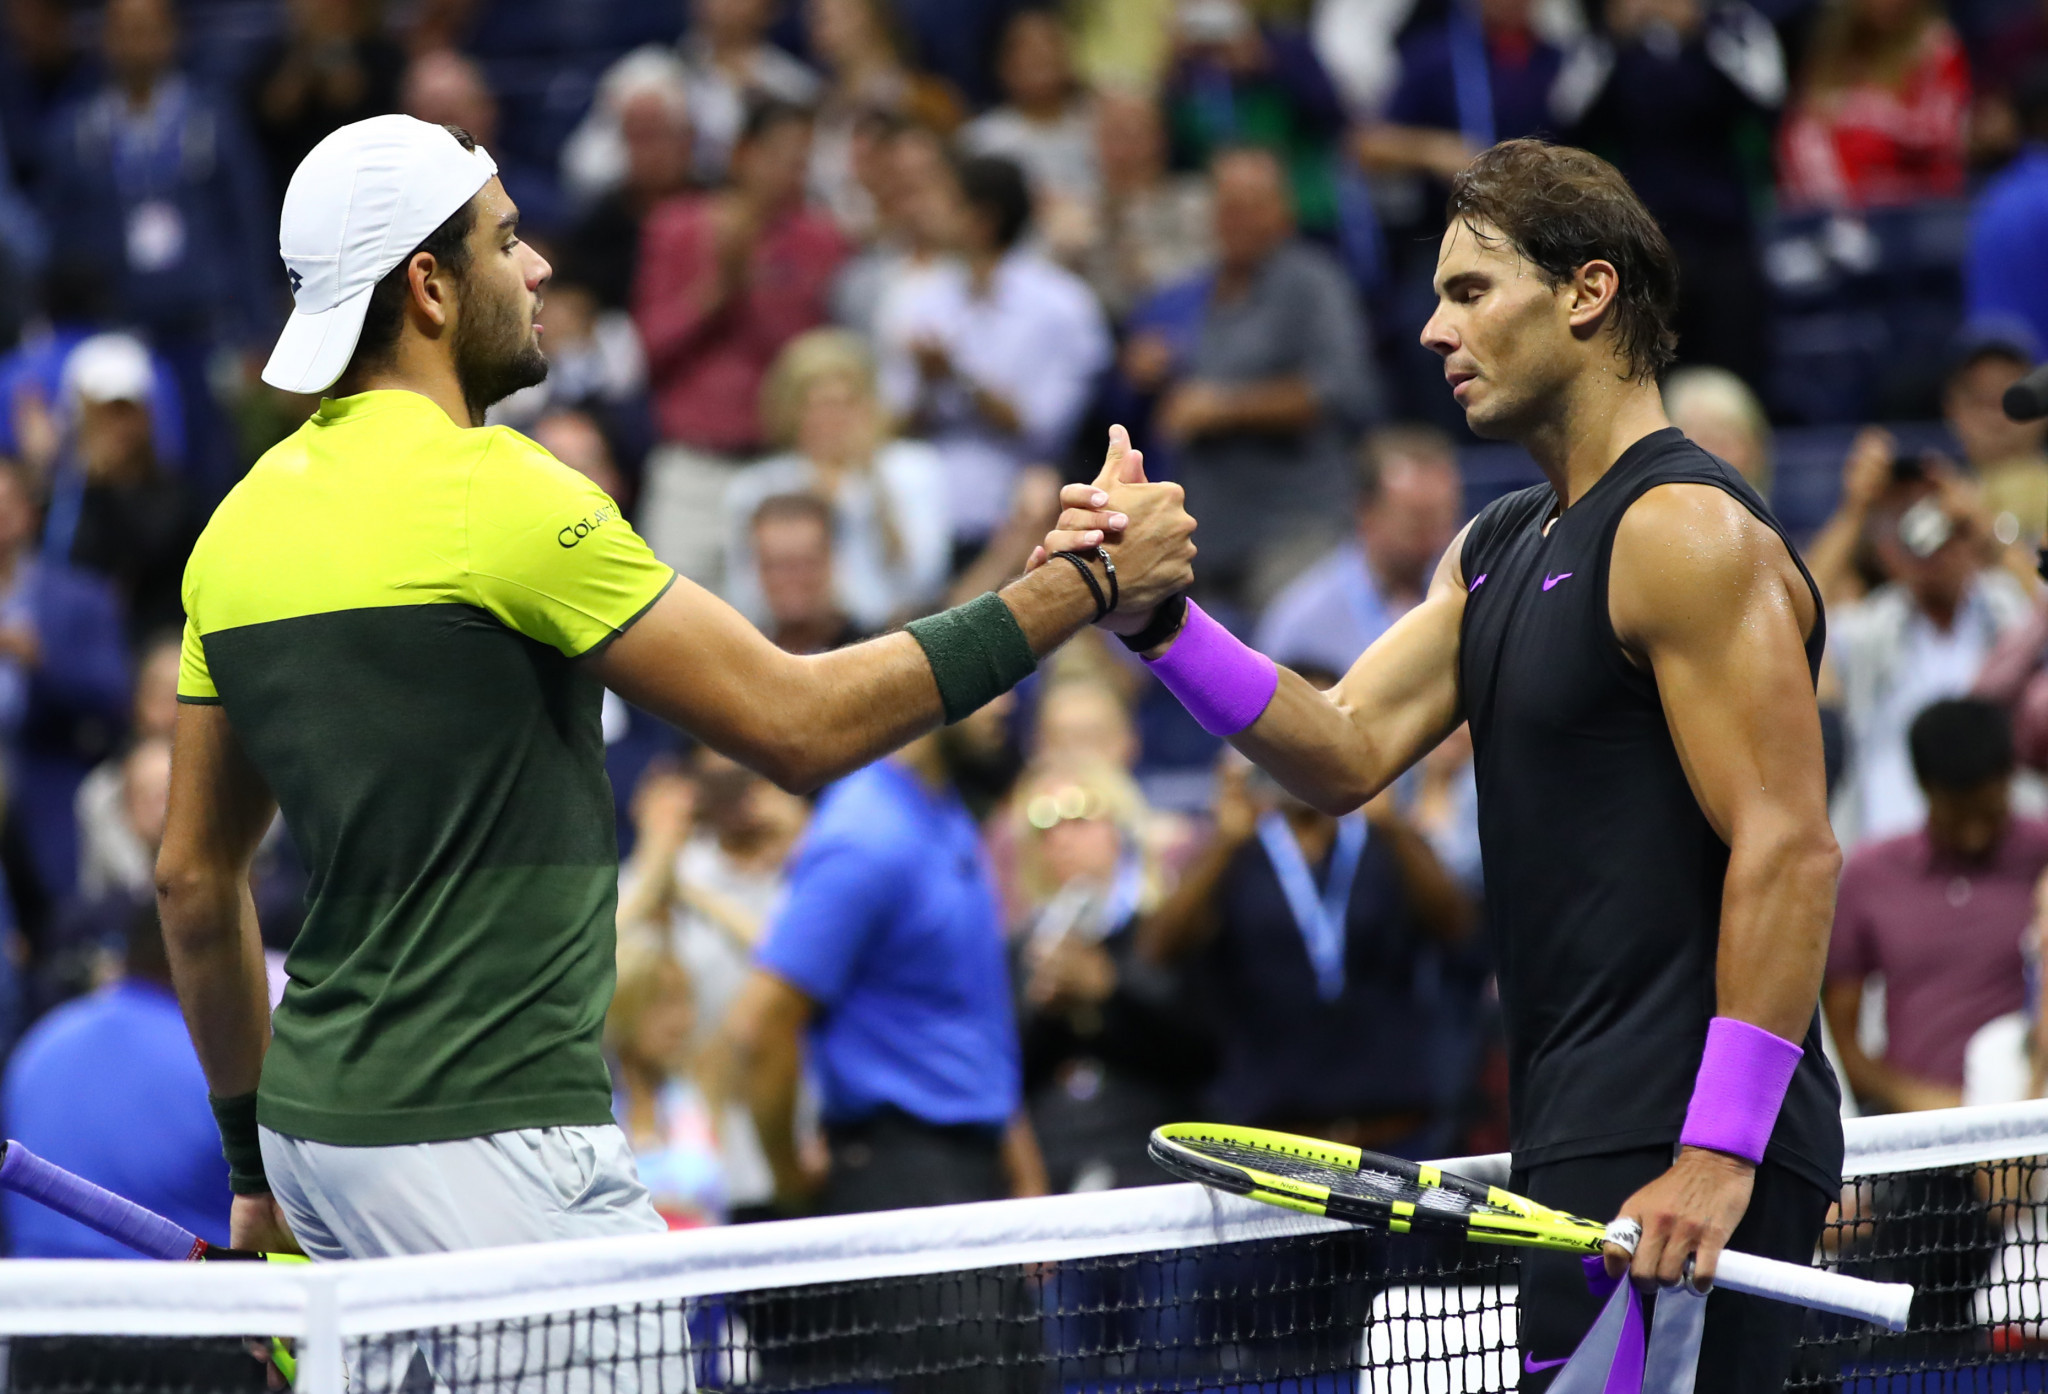 Nadal and Medvedev reach US Open final